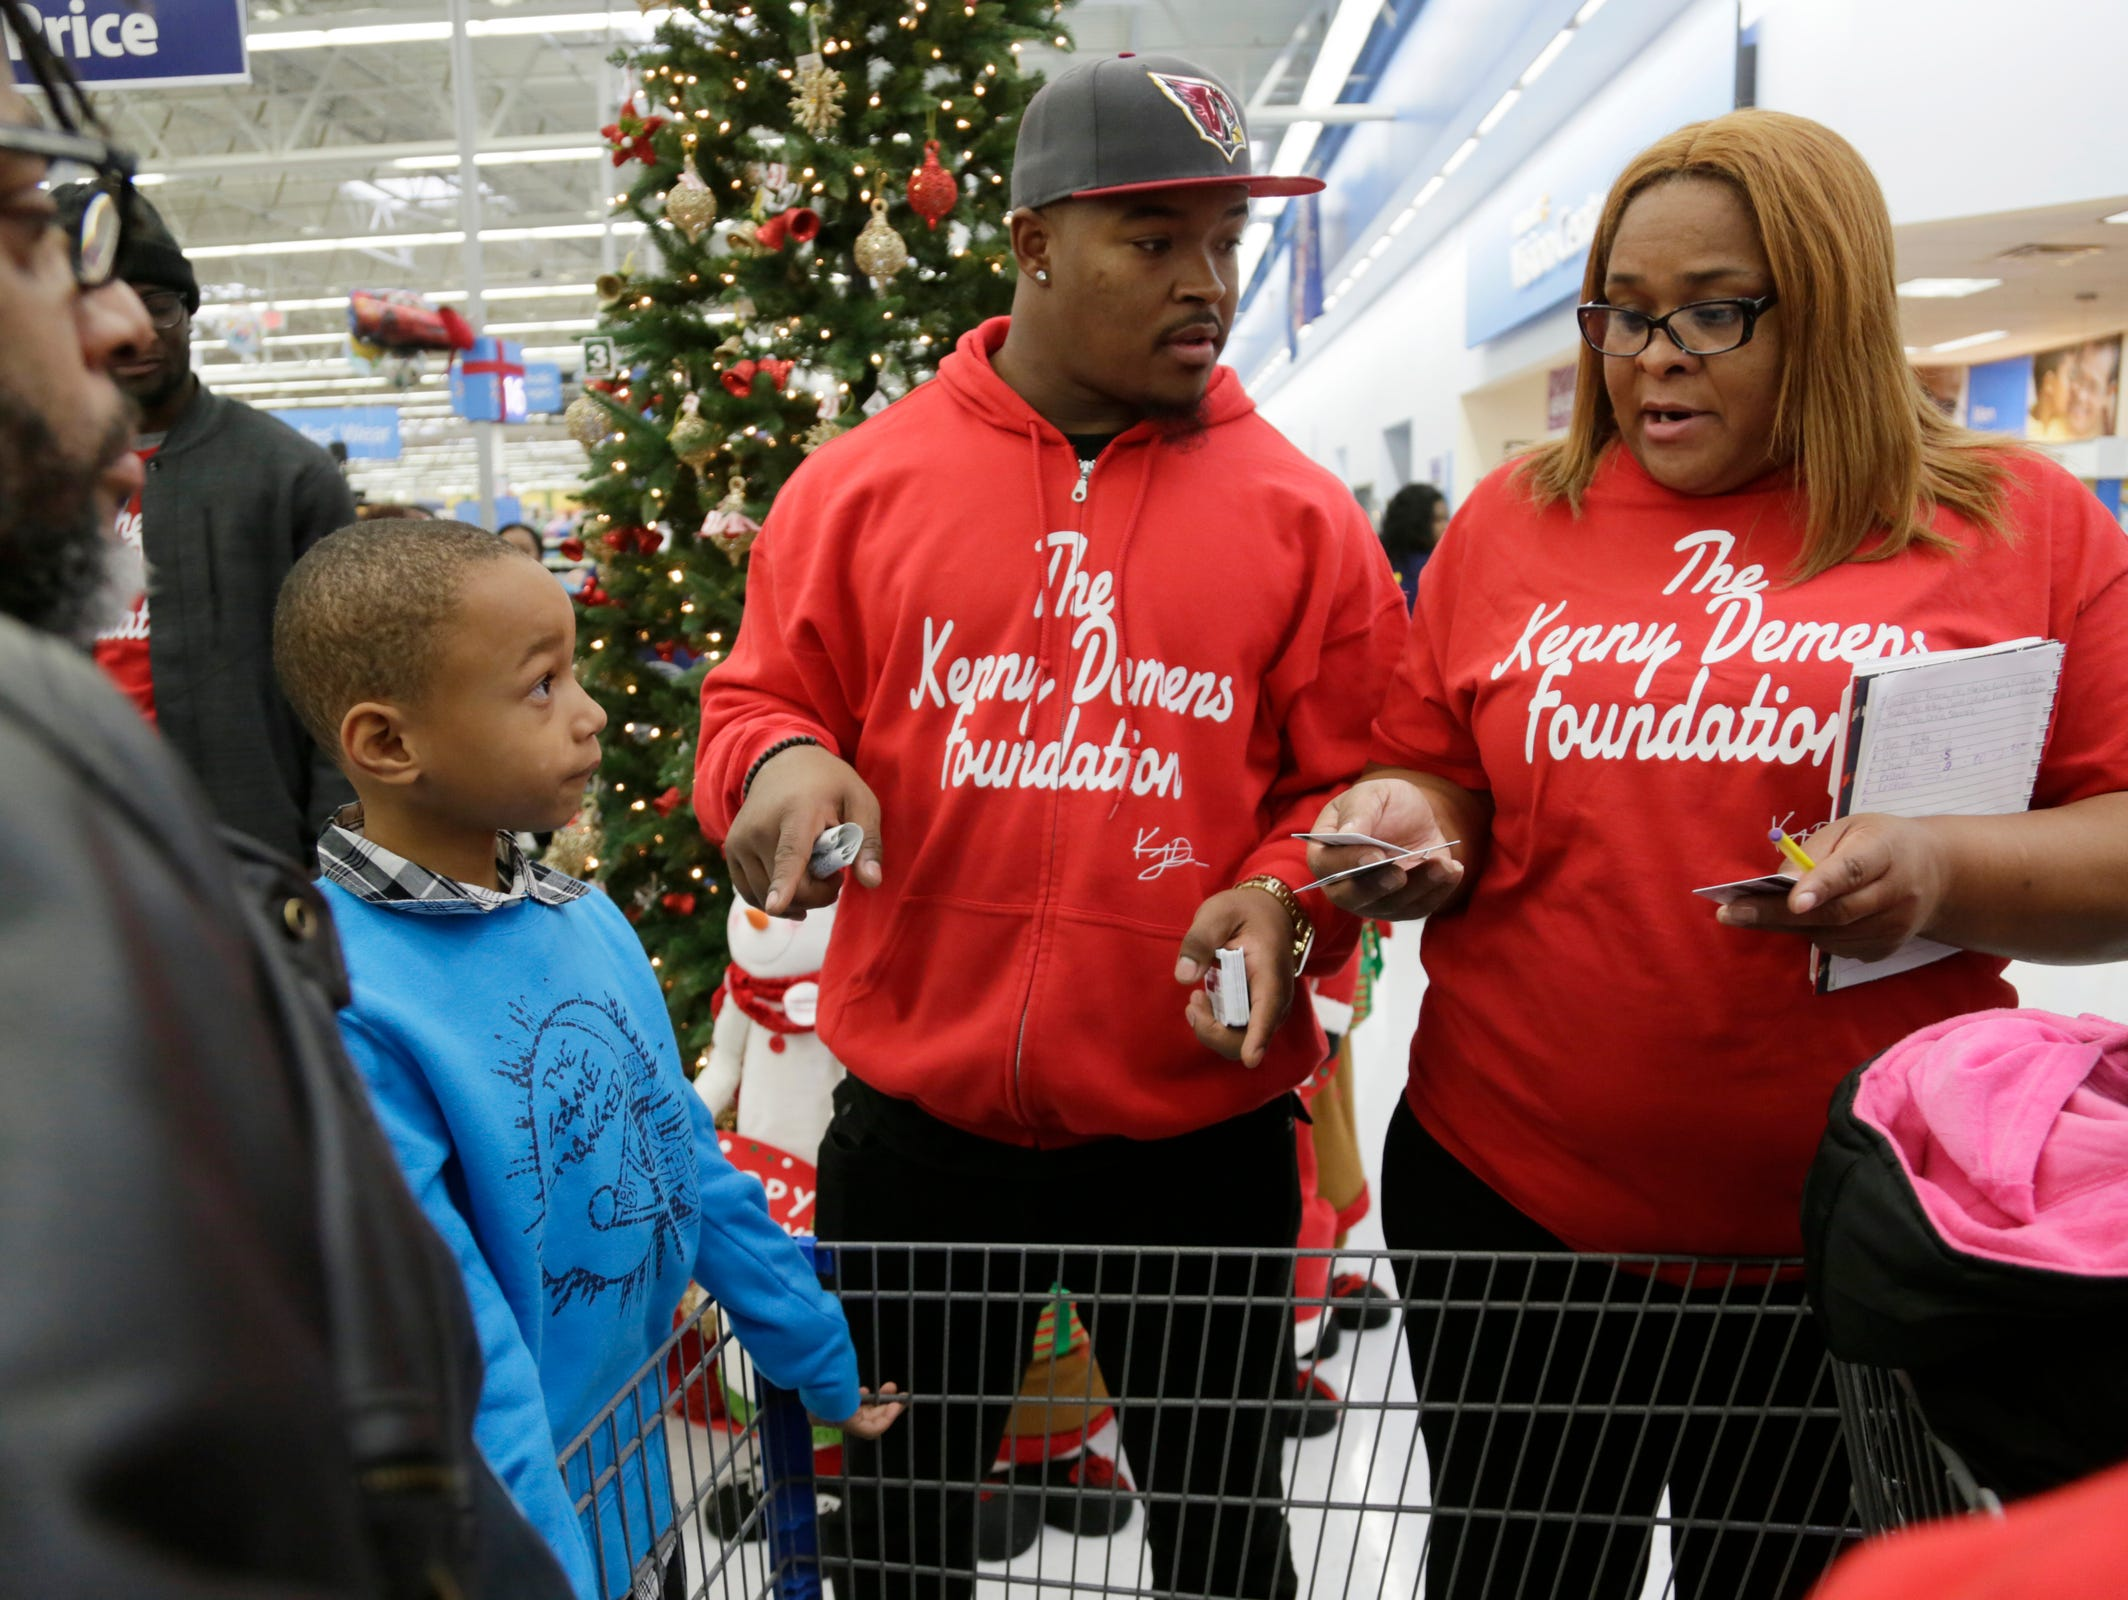 Former Michigan football linebacker Kenny Demens, left and his mom Tammy Demens, 47, of Oak Park prepare to hand out gift cards. Demens who now plays for the NFL's Arizona Cardinals, is having his foundation, take people shopping at the Troy Walmart for the holidays Wednesday Dec. 23, 2015.